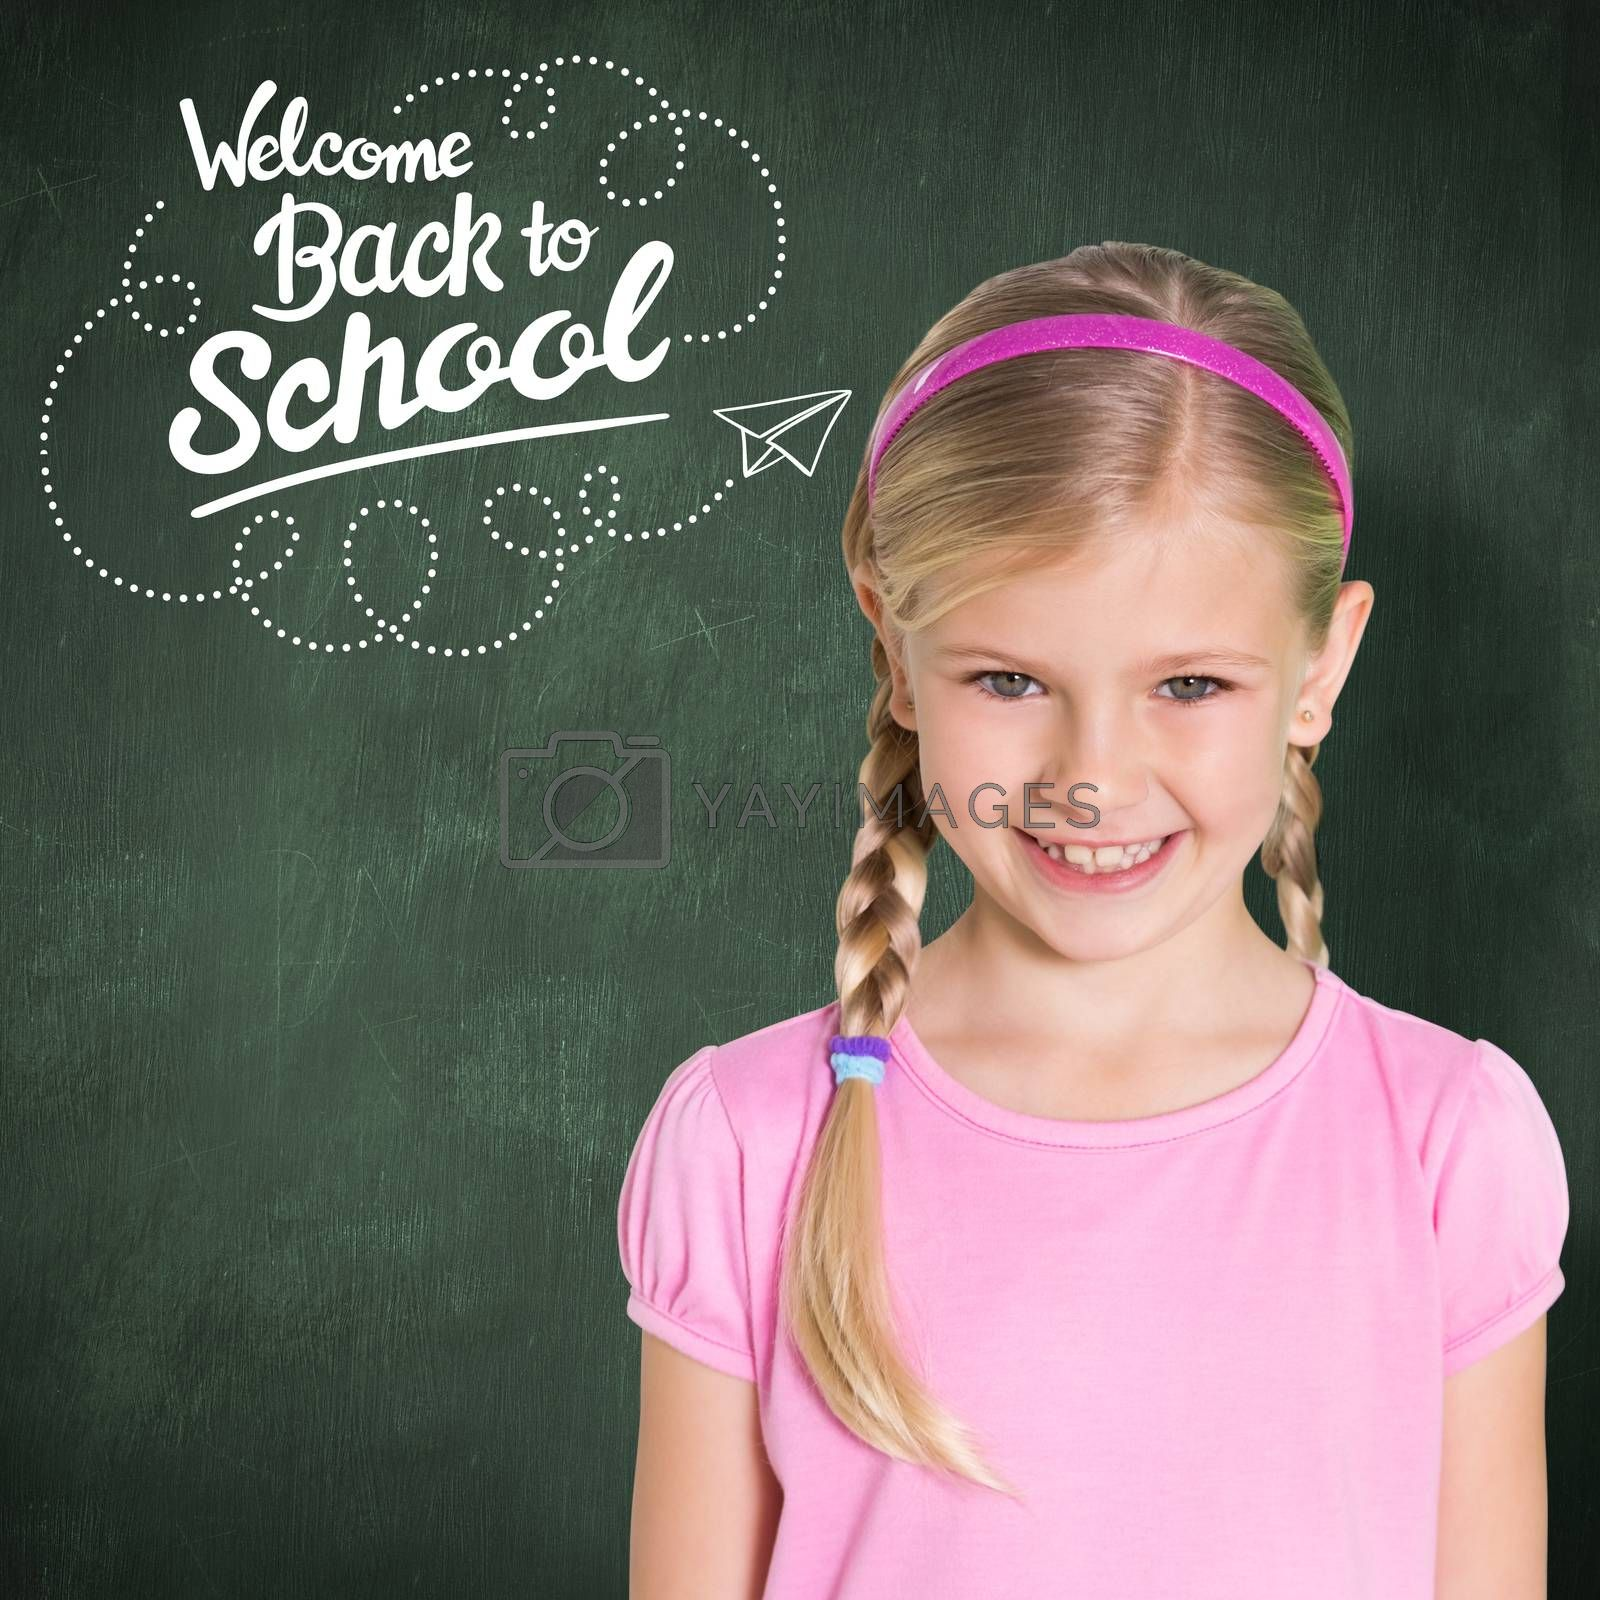 Cute girl smiling at camera against green chalkboard